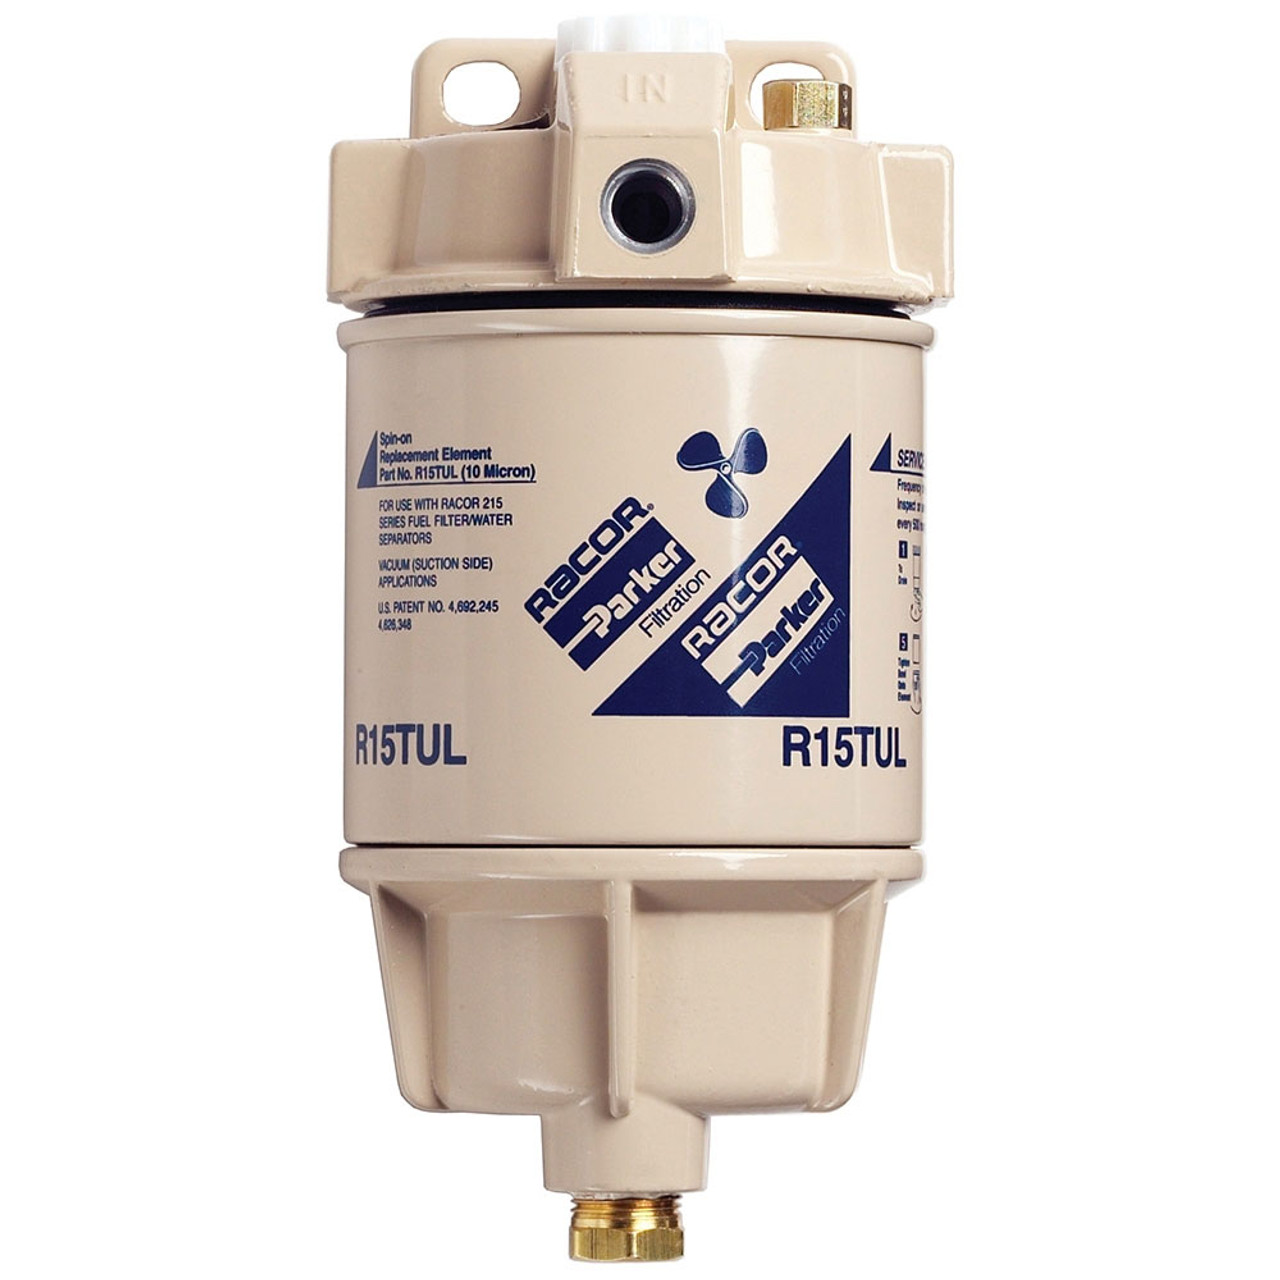 racor 1/4 in  15 gph aquabloc marine spin-on type diesel fuel filter water  separator assembly - 6 qty - john m  ellsworth co  inc